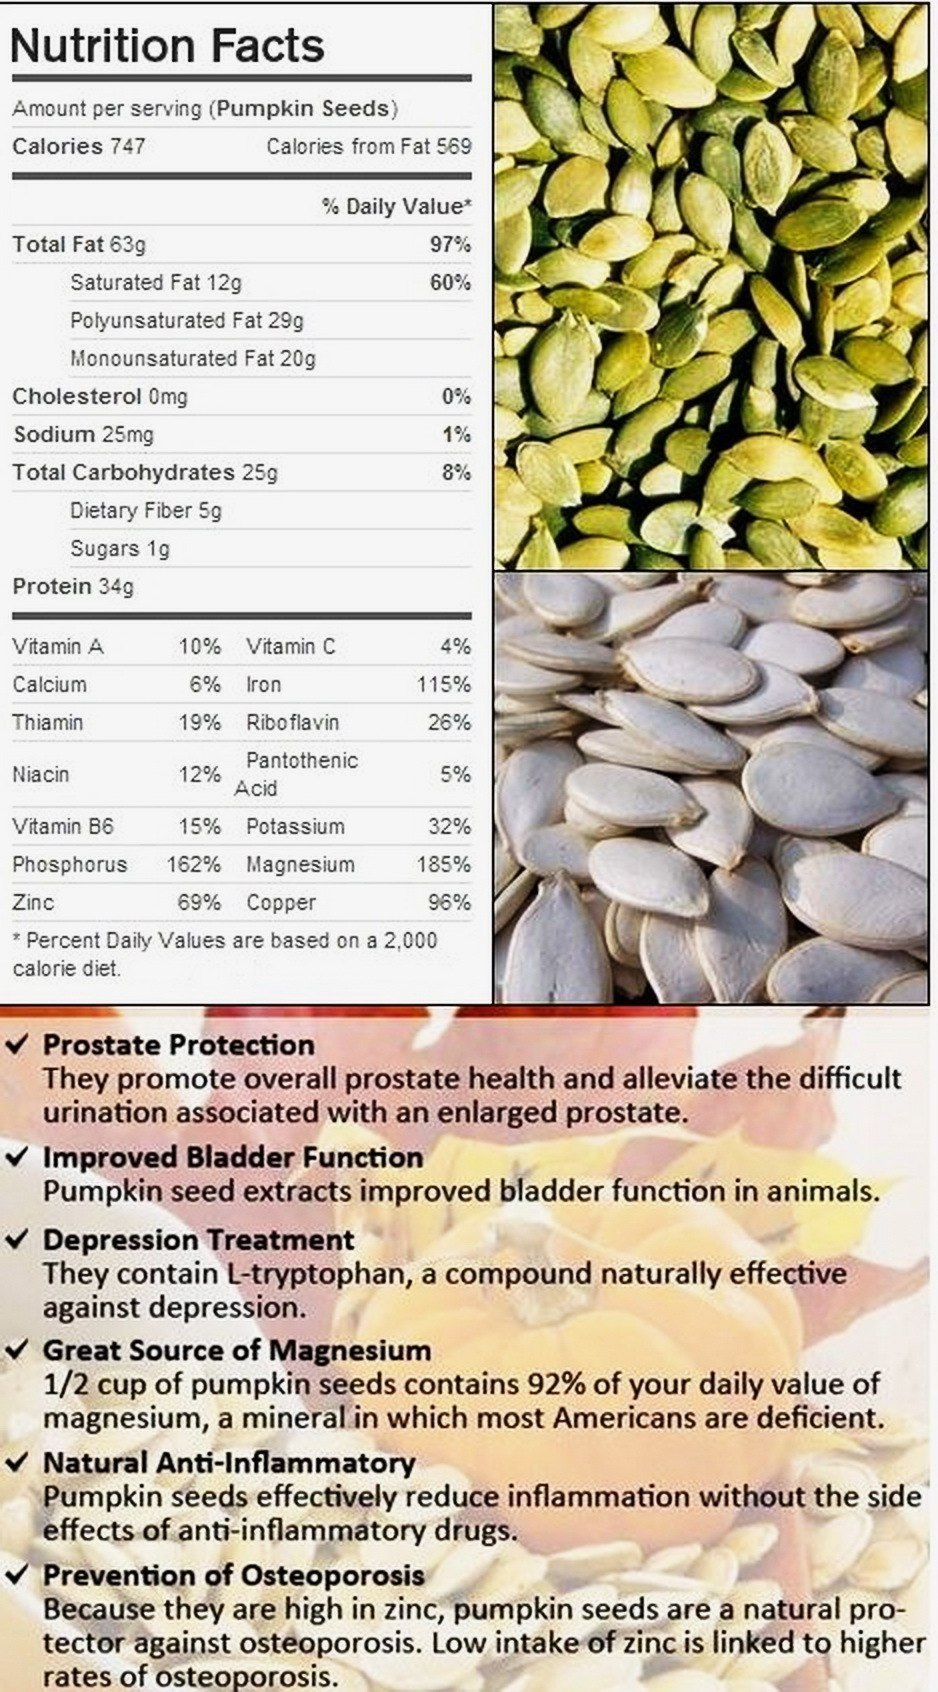 Pumpkin seed nutrition facts